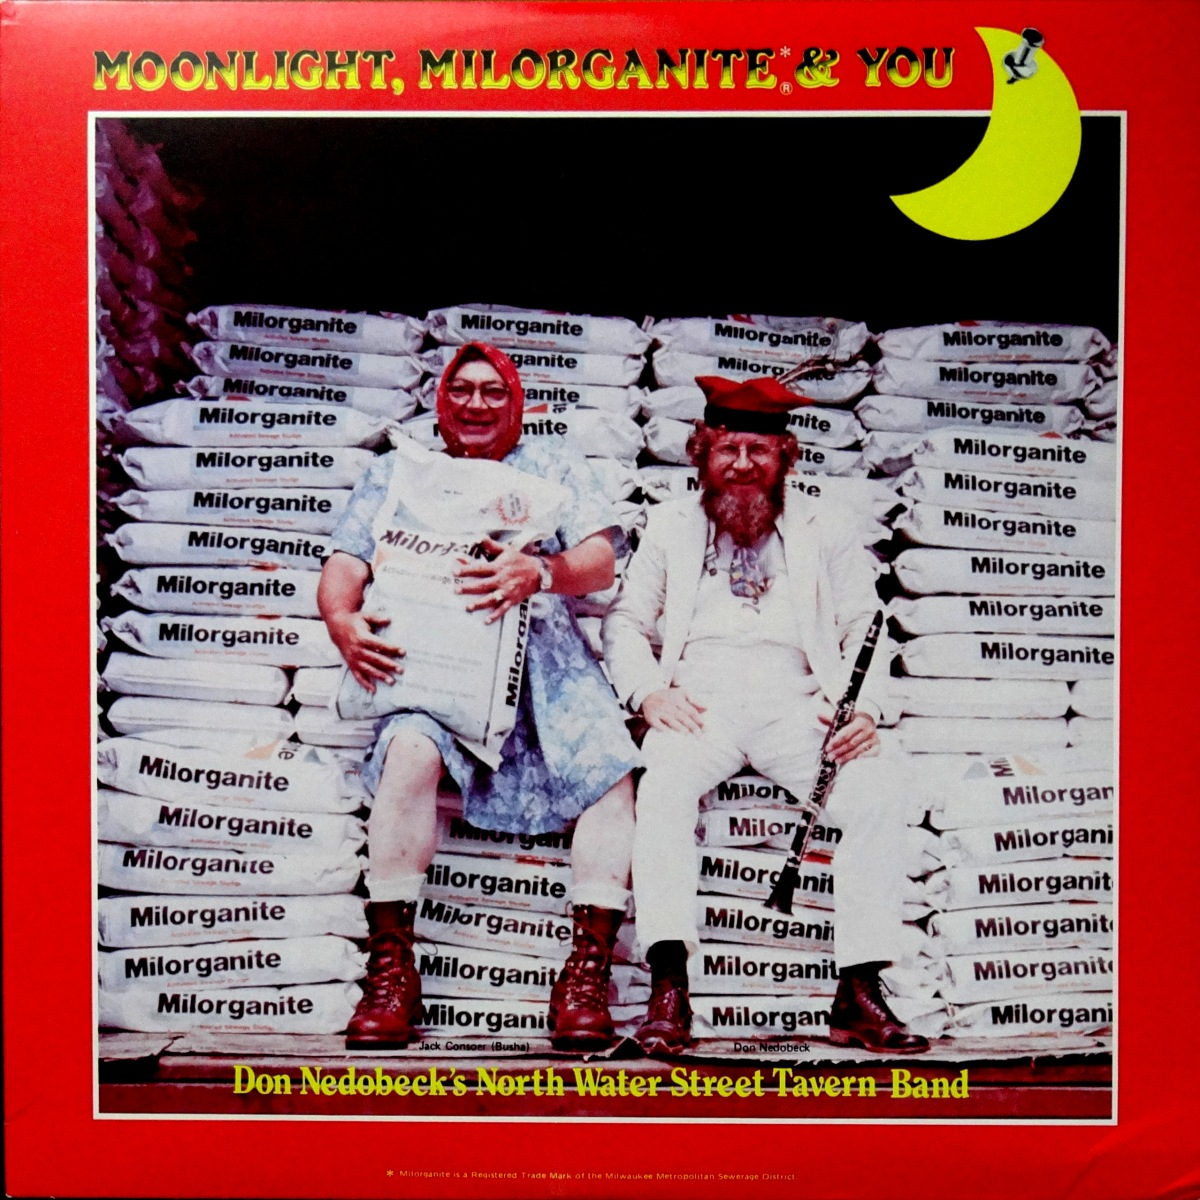 From The Stacks: Don Nedobeck's Northwater Street Tavern Band-Moonlight, Milorganite, and You